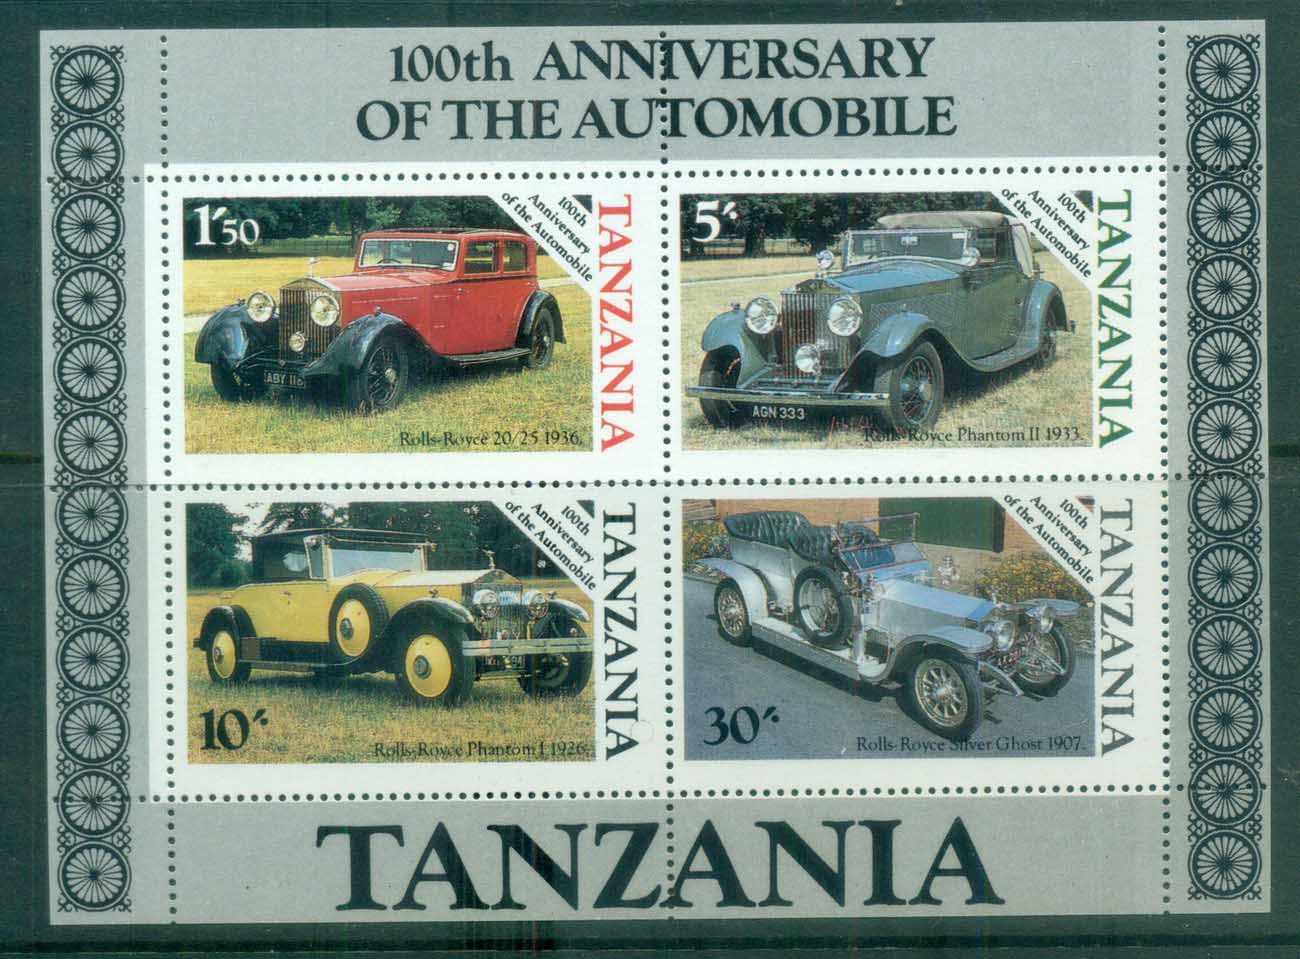 Tanzania 1986 Automobile Centenary MS lot84781